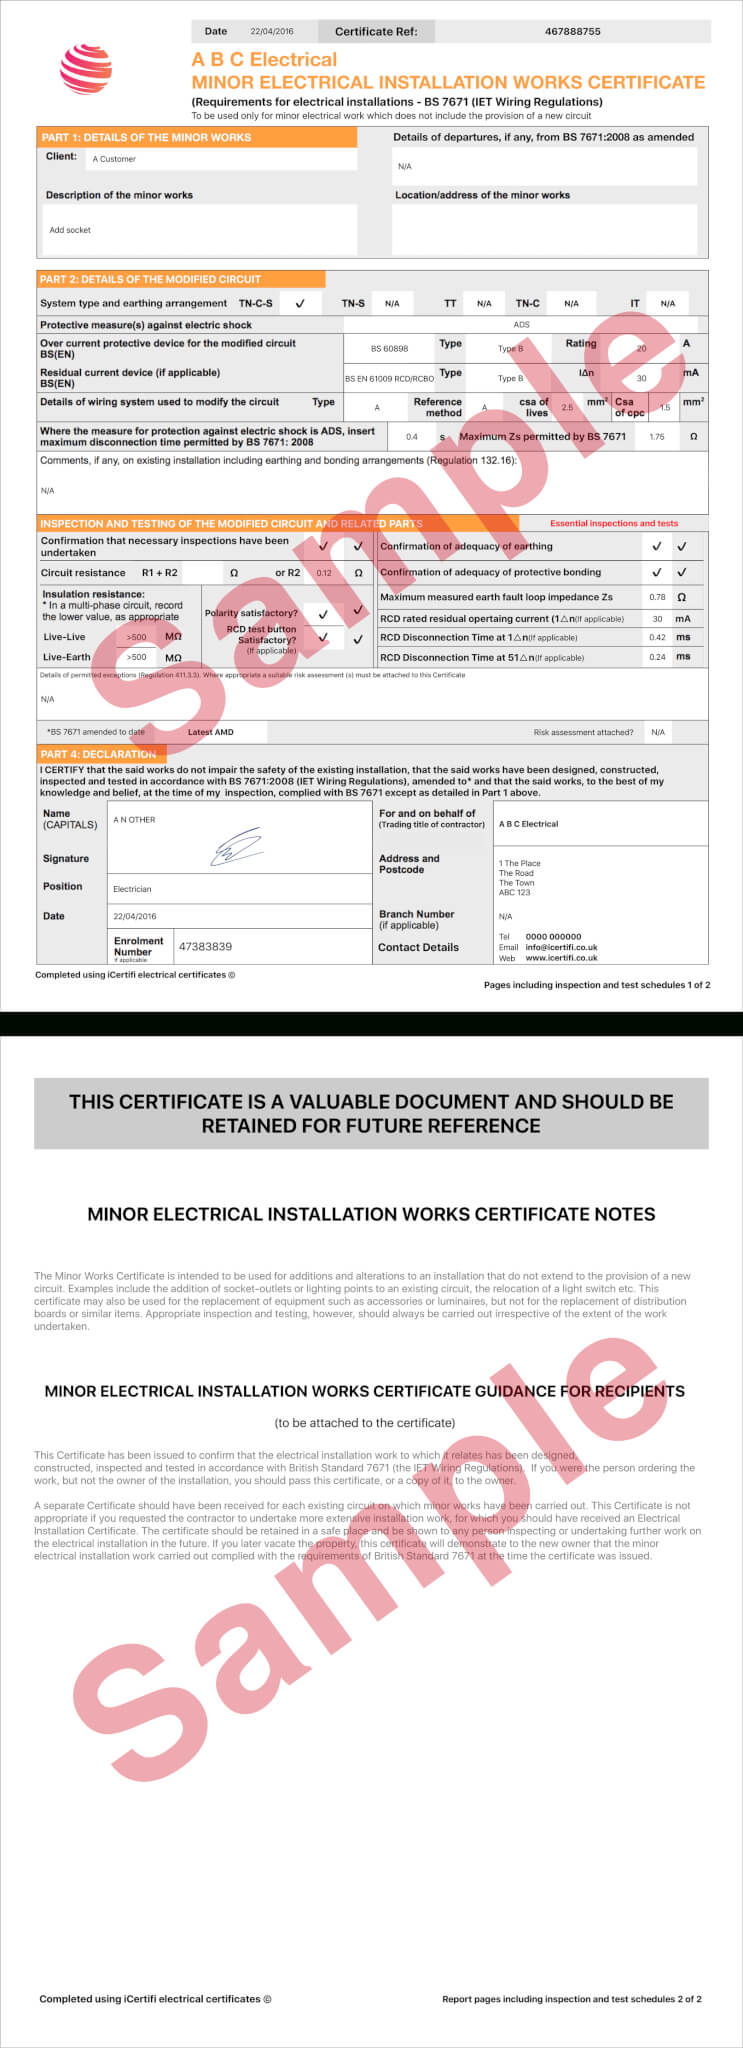 Electrical Certificate - Example Minor Works Certificate Inside Electrical Minor Works Certificate Template